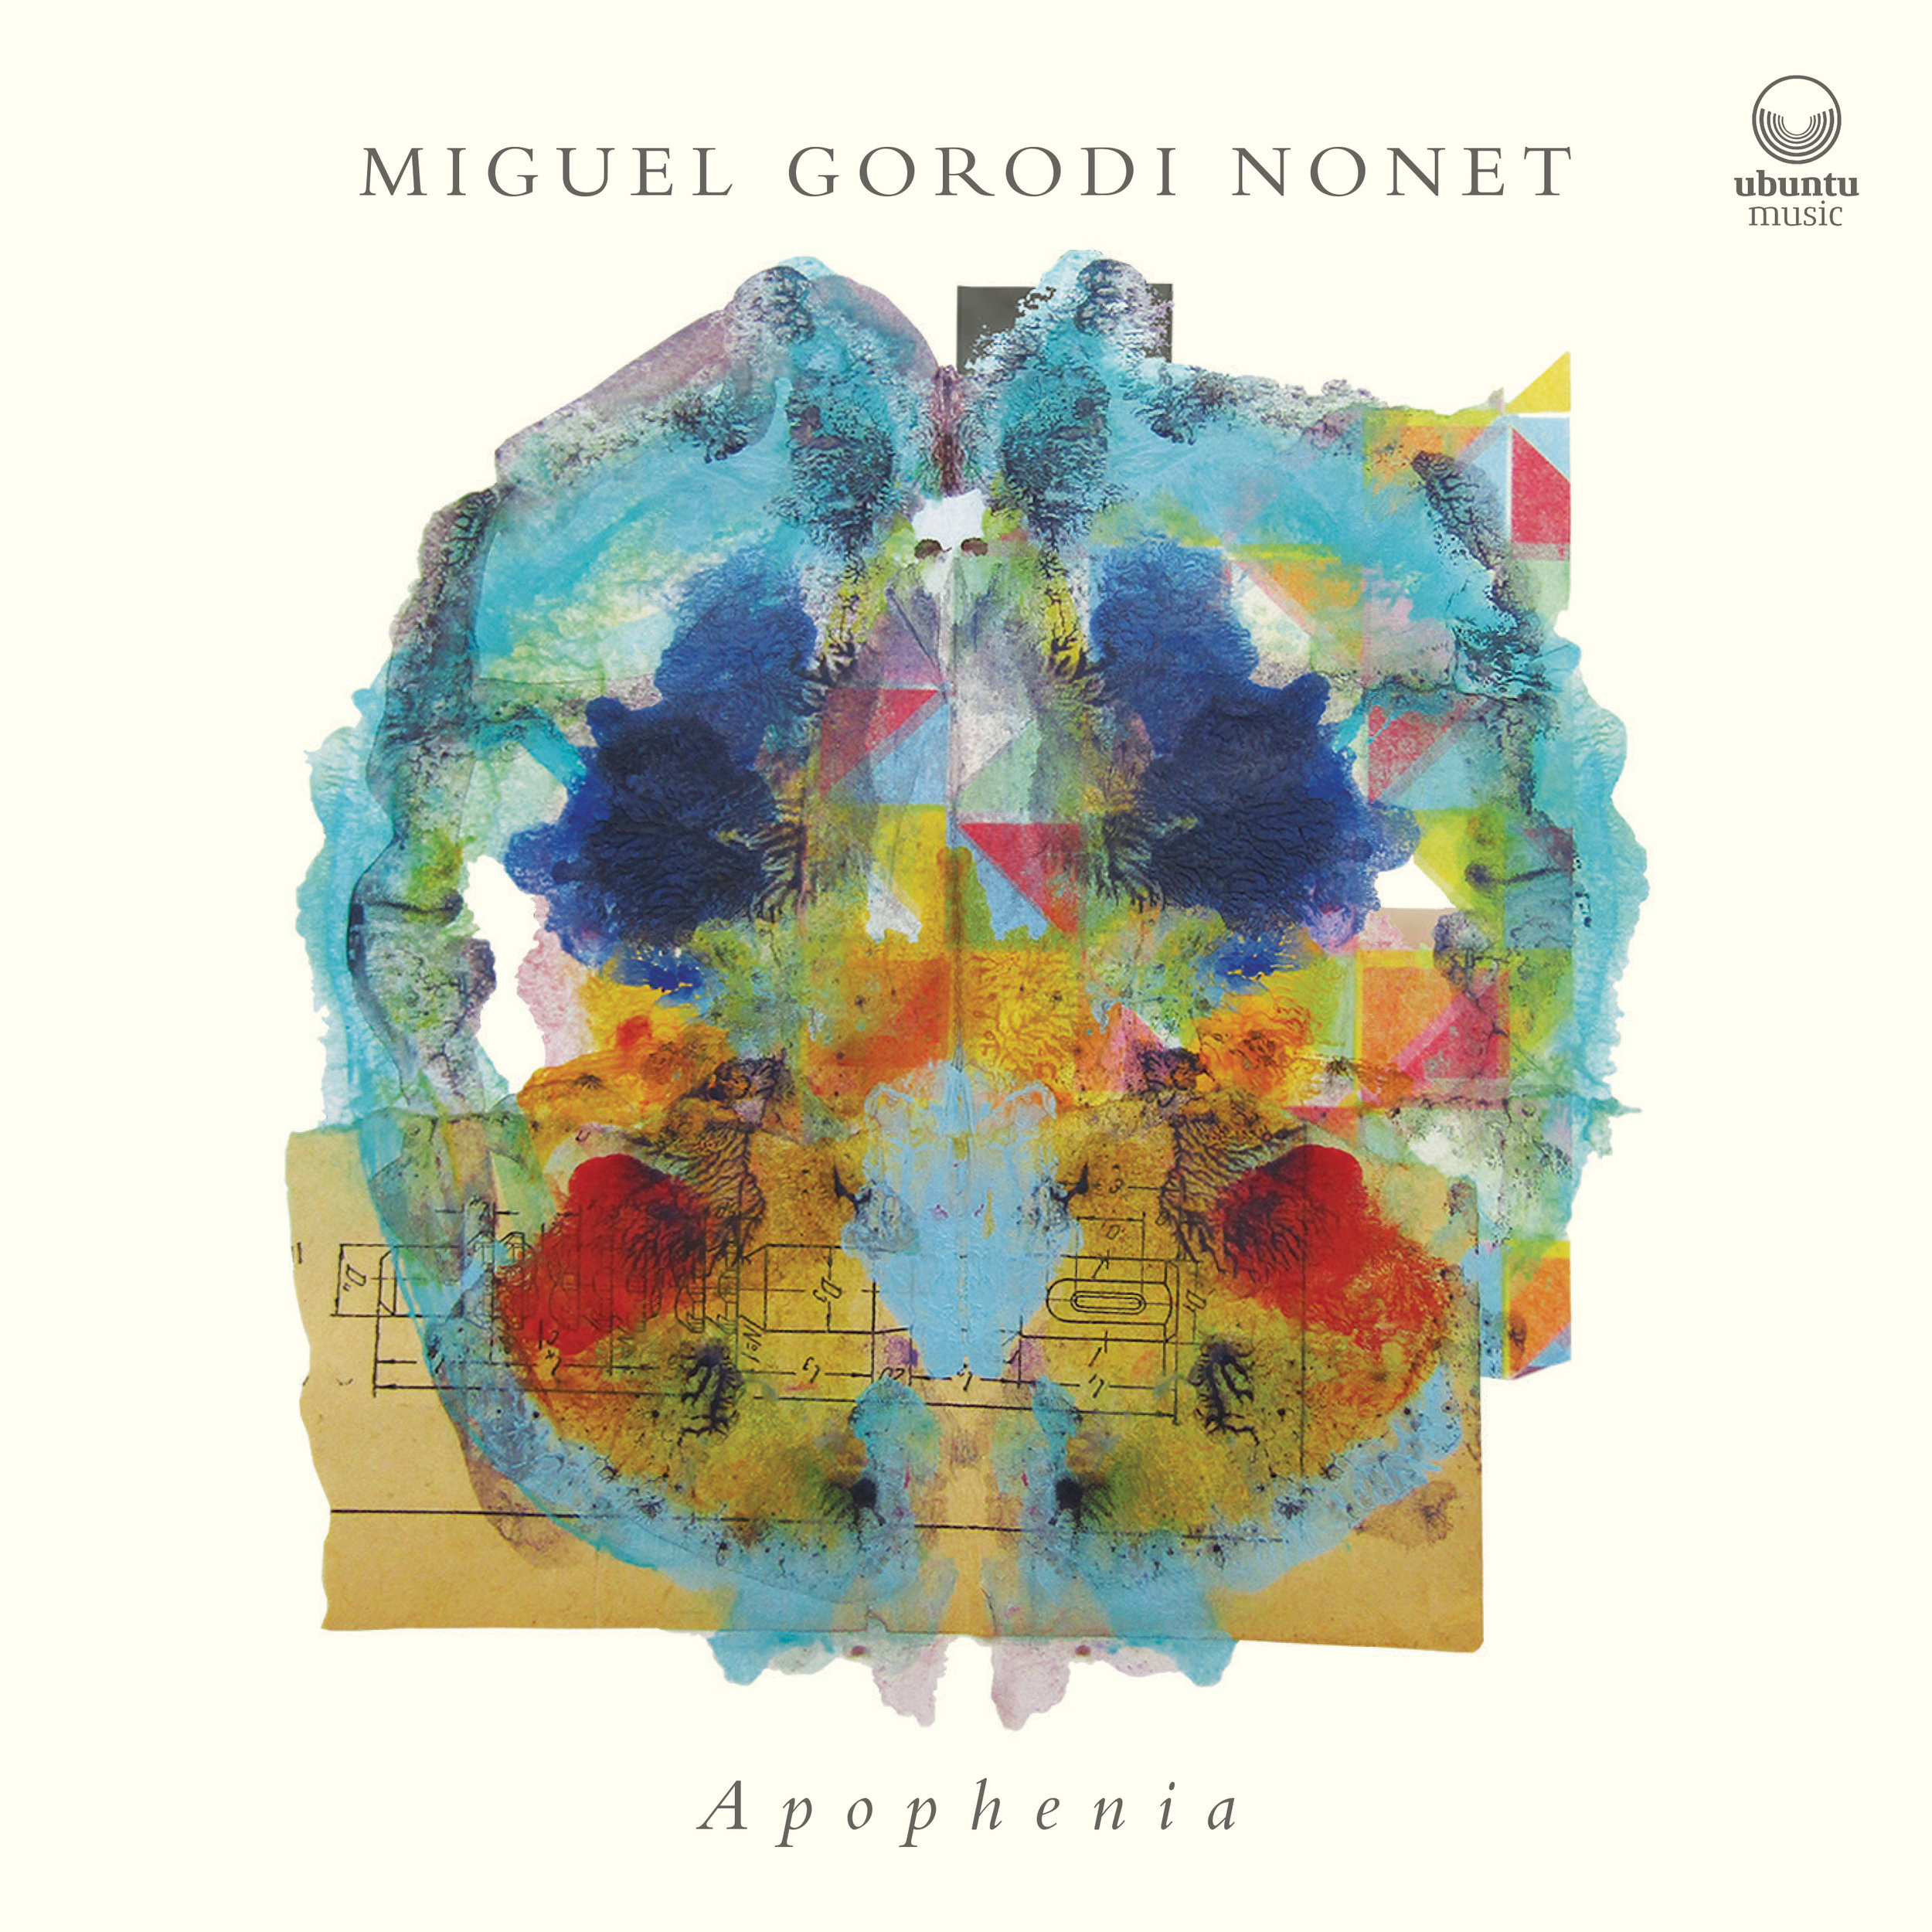 'Apophenia' is scheduled for worldwide release on 24th May 2019, on Ubuntu Music.